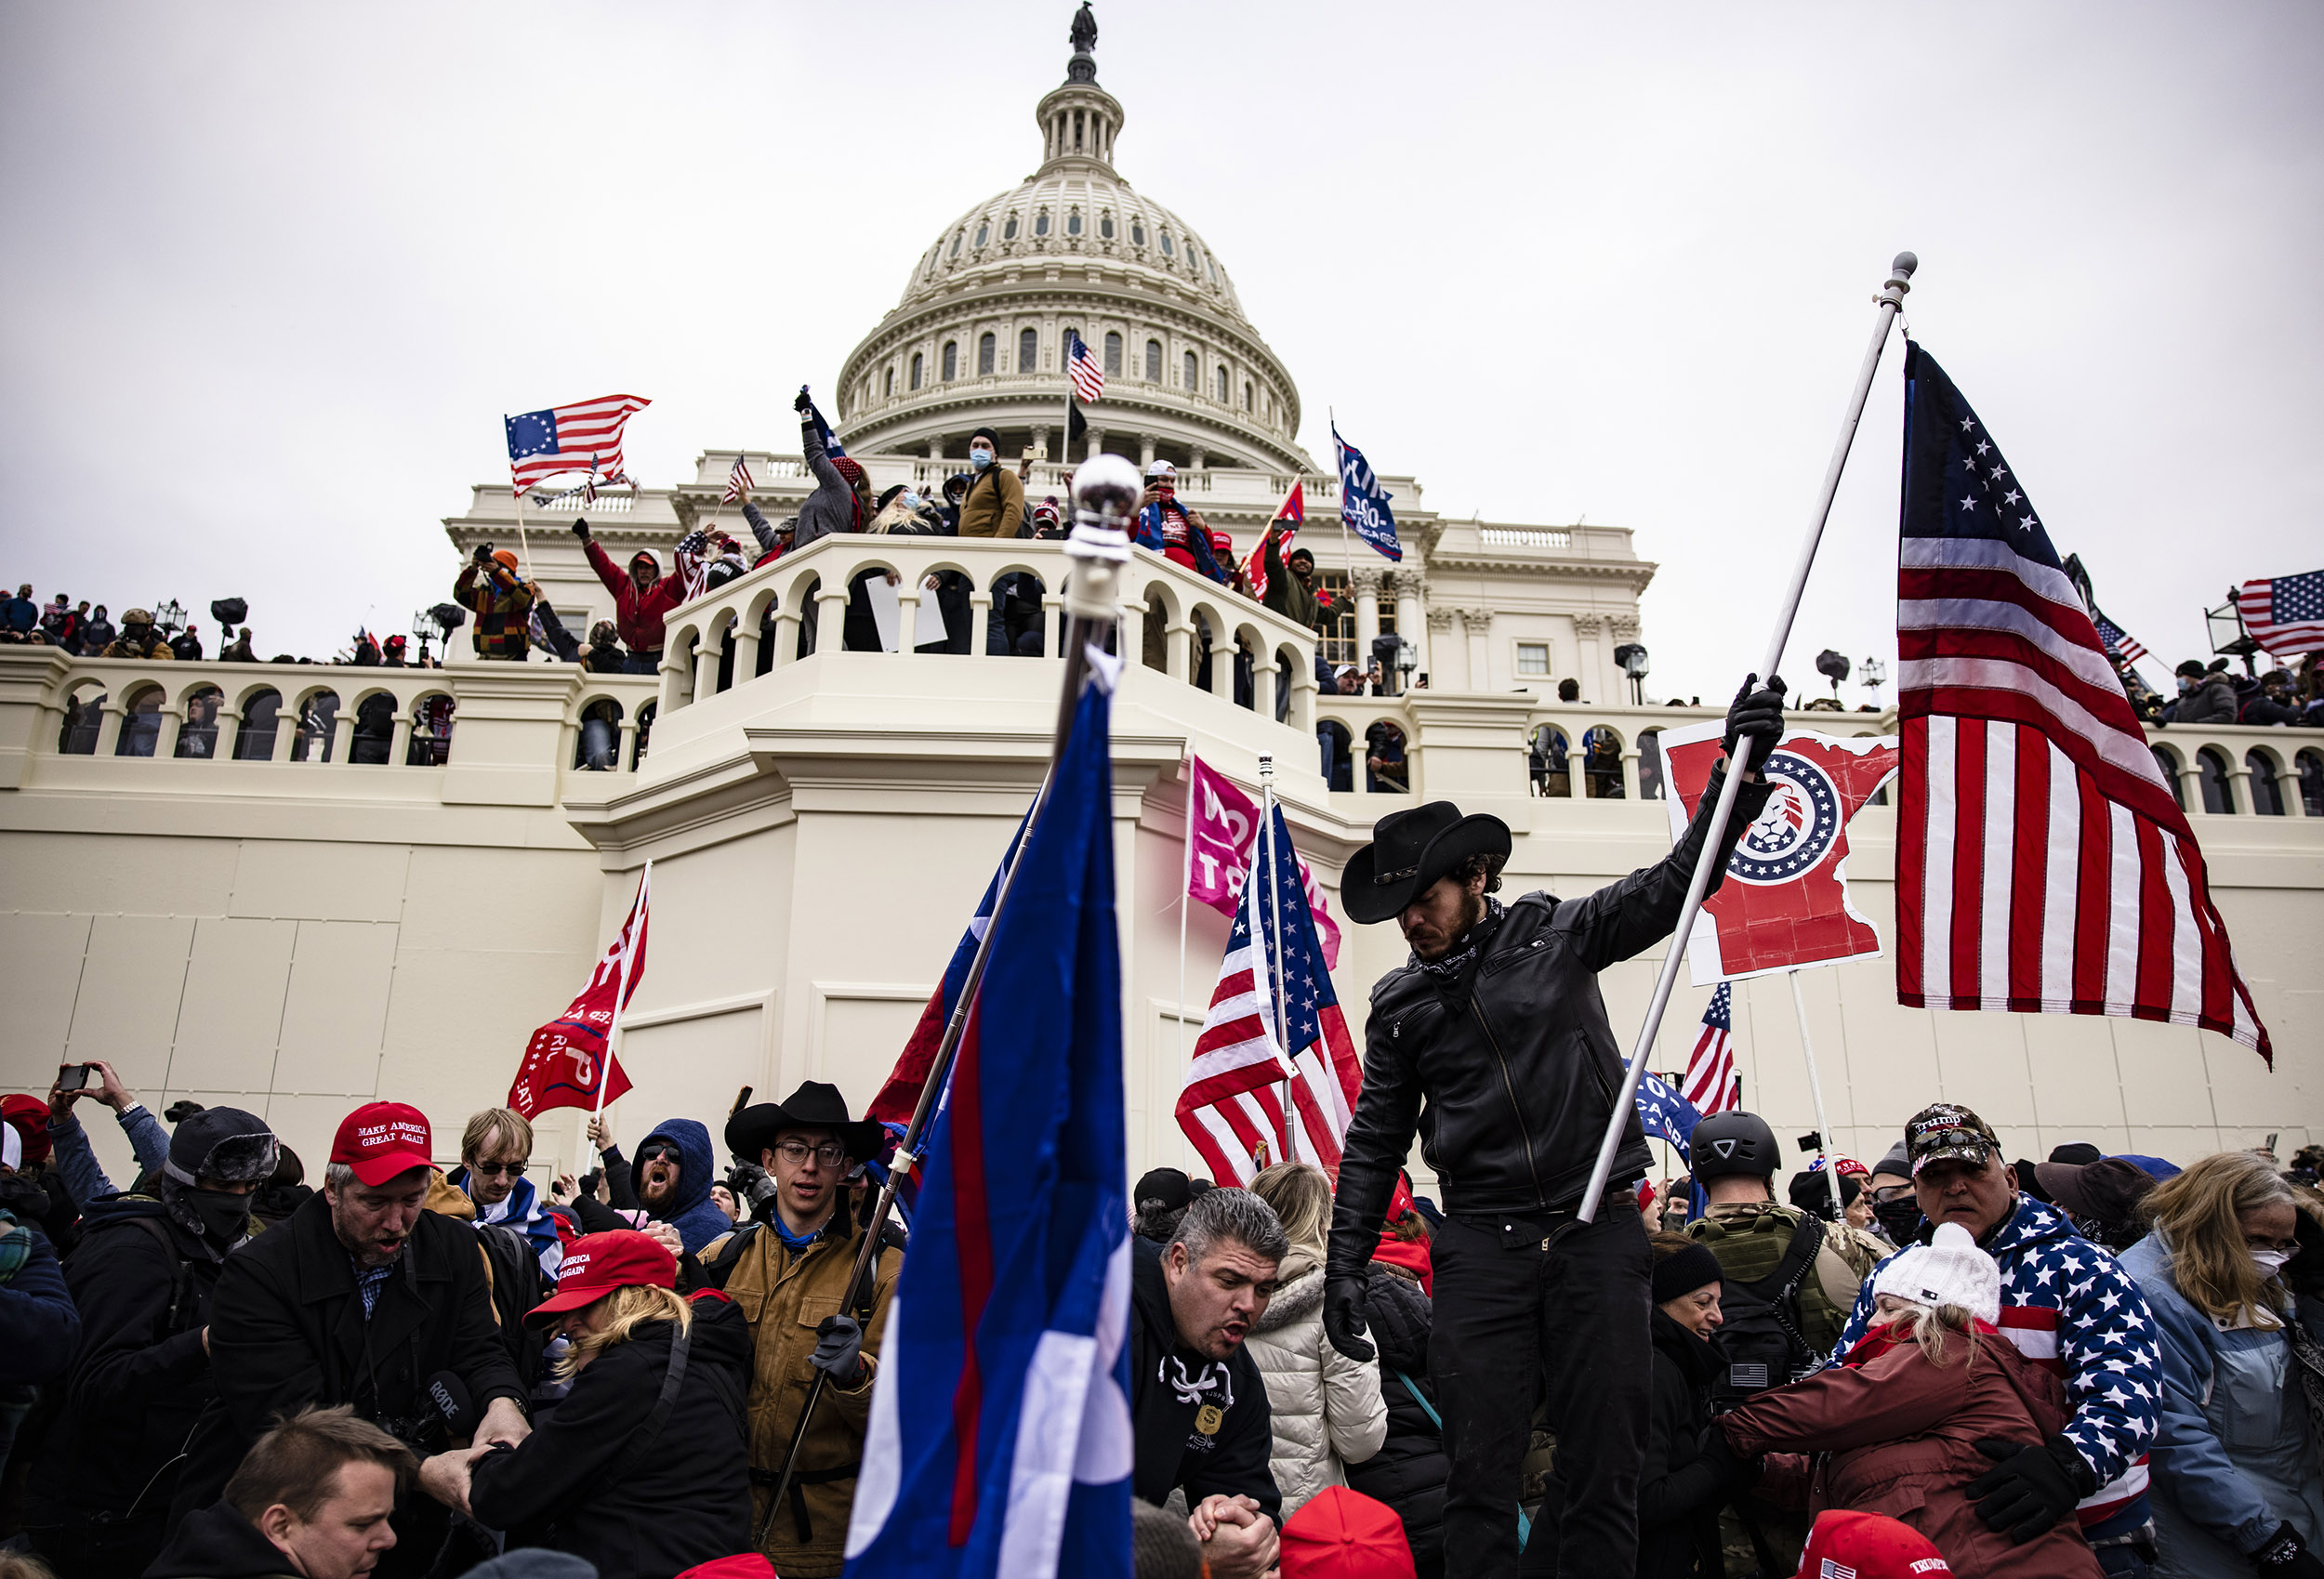 Attitudes on Jan. 6 Capitol attack settle in along familiar partisan lines